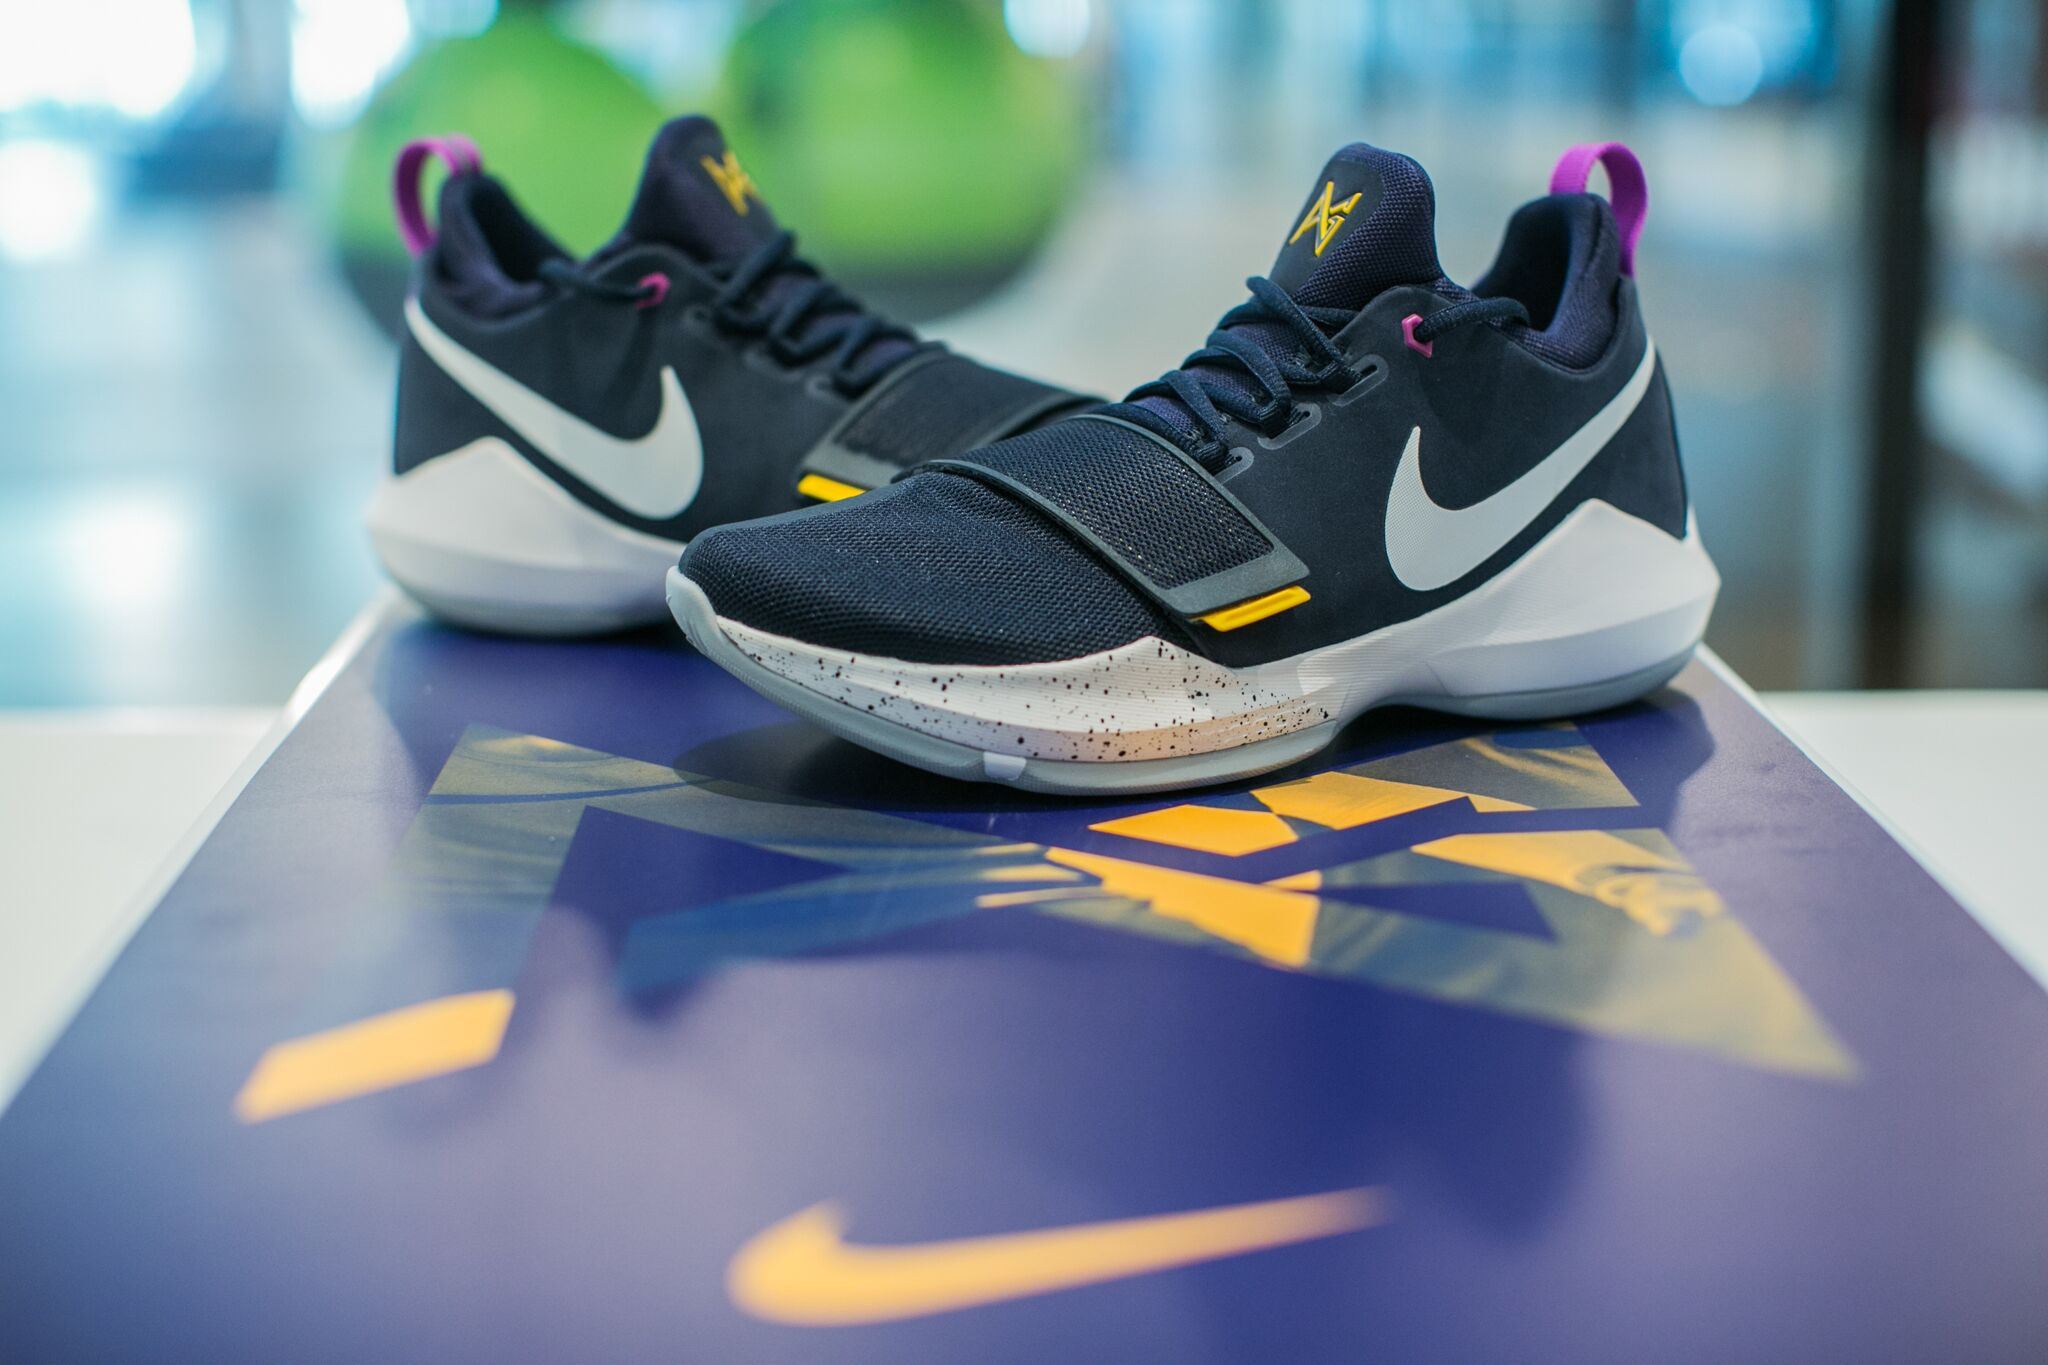 #FullCourtFerocity – The PG1 is your next go-to basketball shoe